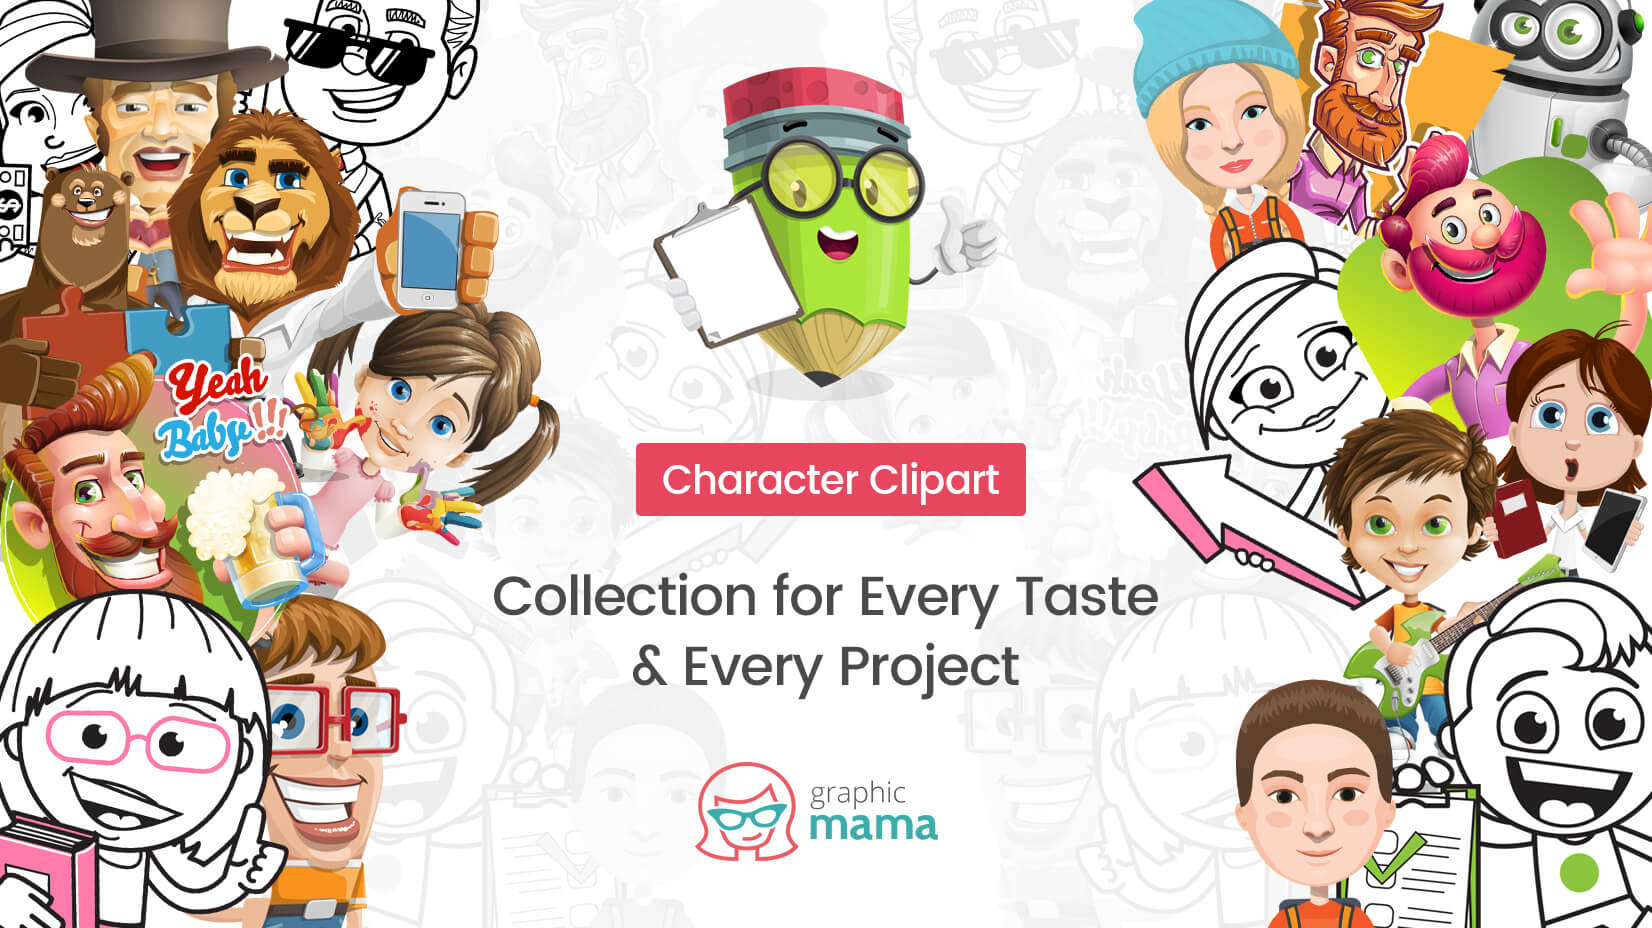 Character Clipart: a Collection for Every Taste & Every Project.